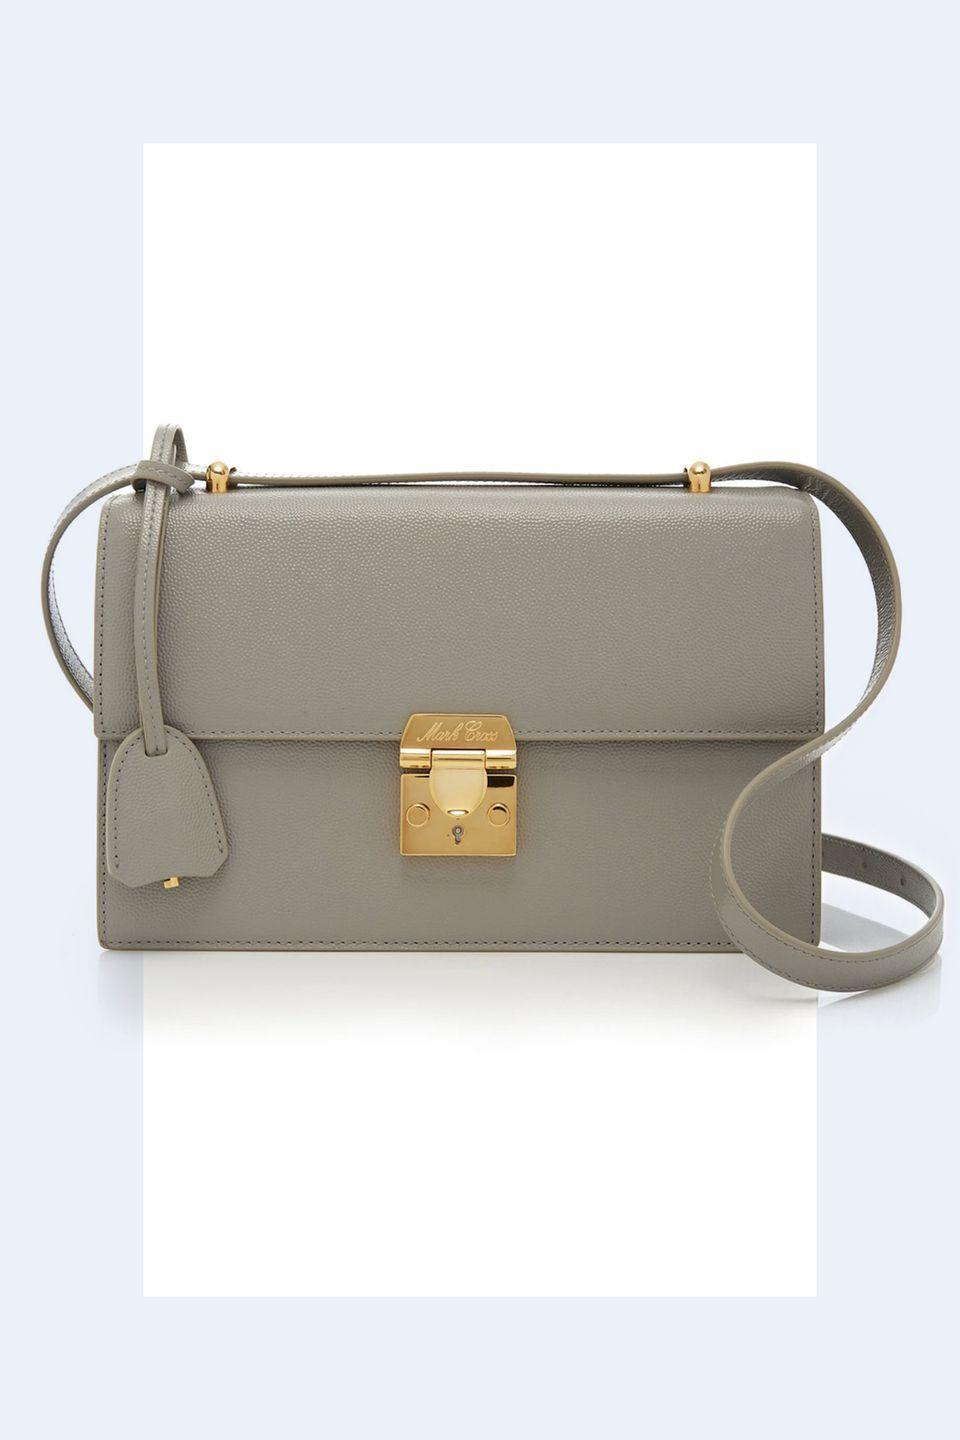 """<p><a rel=""""nofollow noopener"""" href=""""https://www.modaoperandi.com/mark-cross-fw18/downtown-caviar-crossbody?size=OS"""" target=""""_blank"""" data-ylk=""""slk:SHOP NOW"""" class=""""link rapid-noclick-resp"""">SHOP NOW</a> <em>Mark Cross Caviar Purse, $1,995</em></p><p>""""Accessories are fun! While they are of course functional, they can be transformational for your outfit. A lot of designers are playing around with bag sizes-oversized, super tiny. A woman carrying a 'power' bag demands attention."""" -<em><a rel=""""nofollow noopener"""" href=""""http://www.andrewgelwicks.com/"""" target=""""_blank"""" data-ylk=""""slk:Andrew Gelwicks"""" class=""""link rapid-noclick-resp"""">Andrew Gelwicks</a></em></p>"""